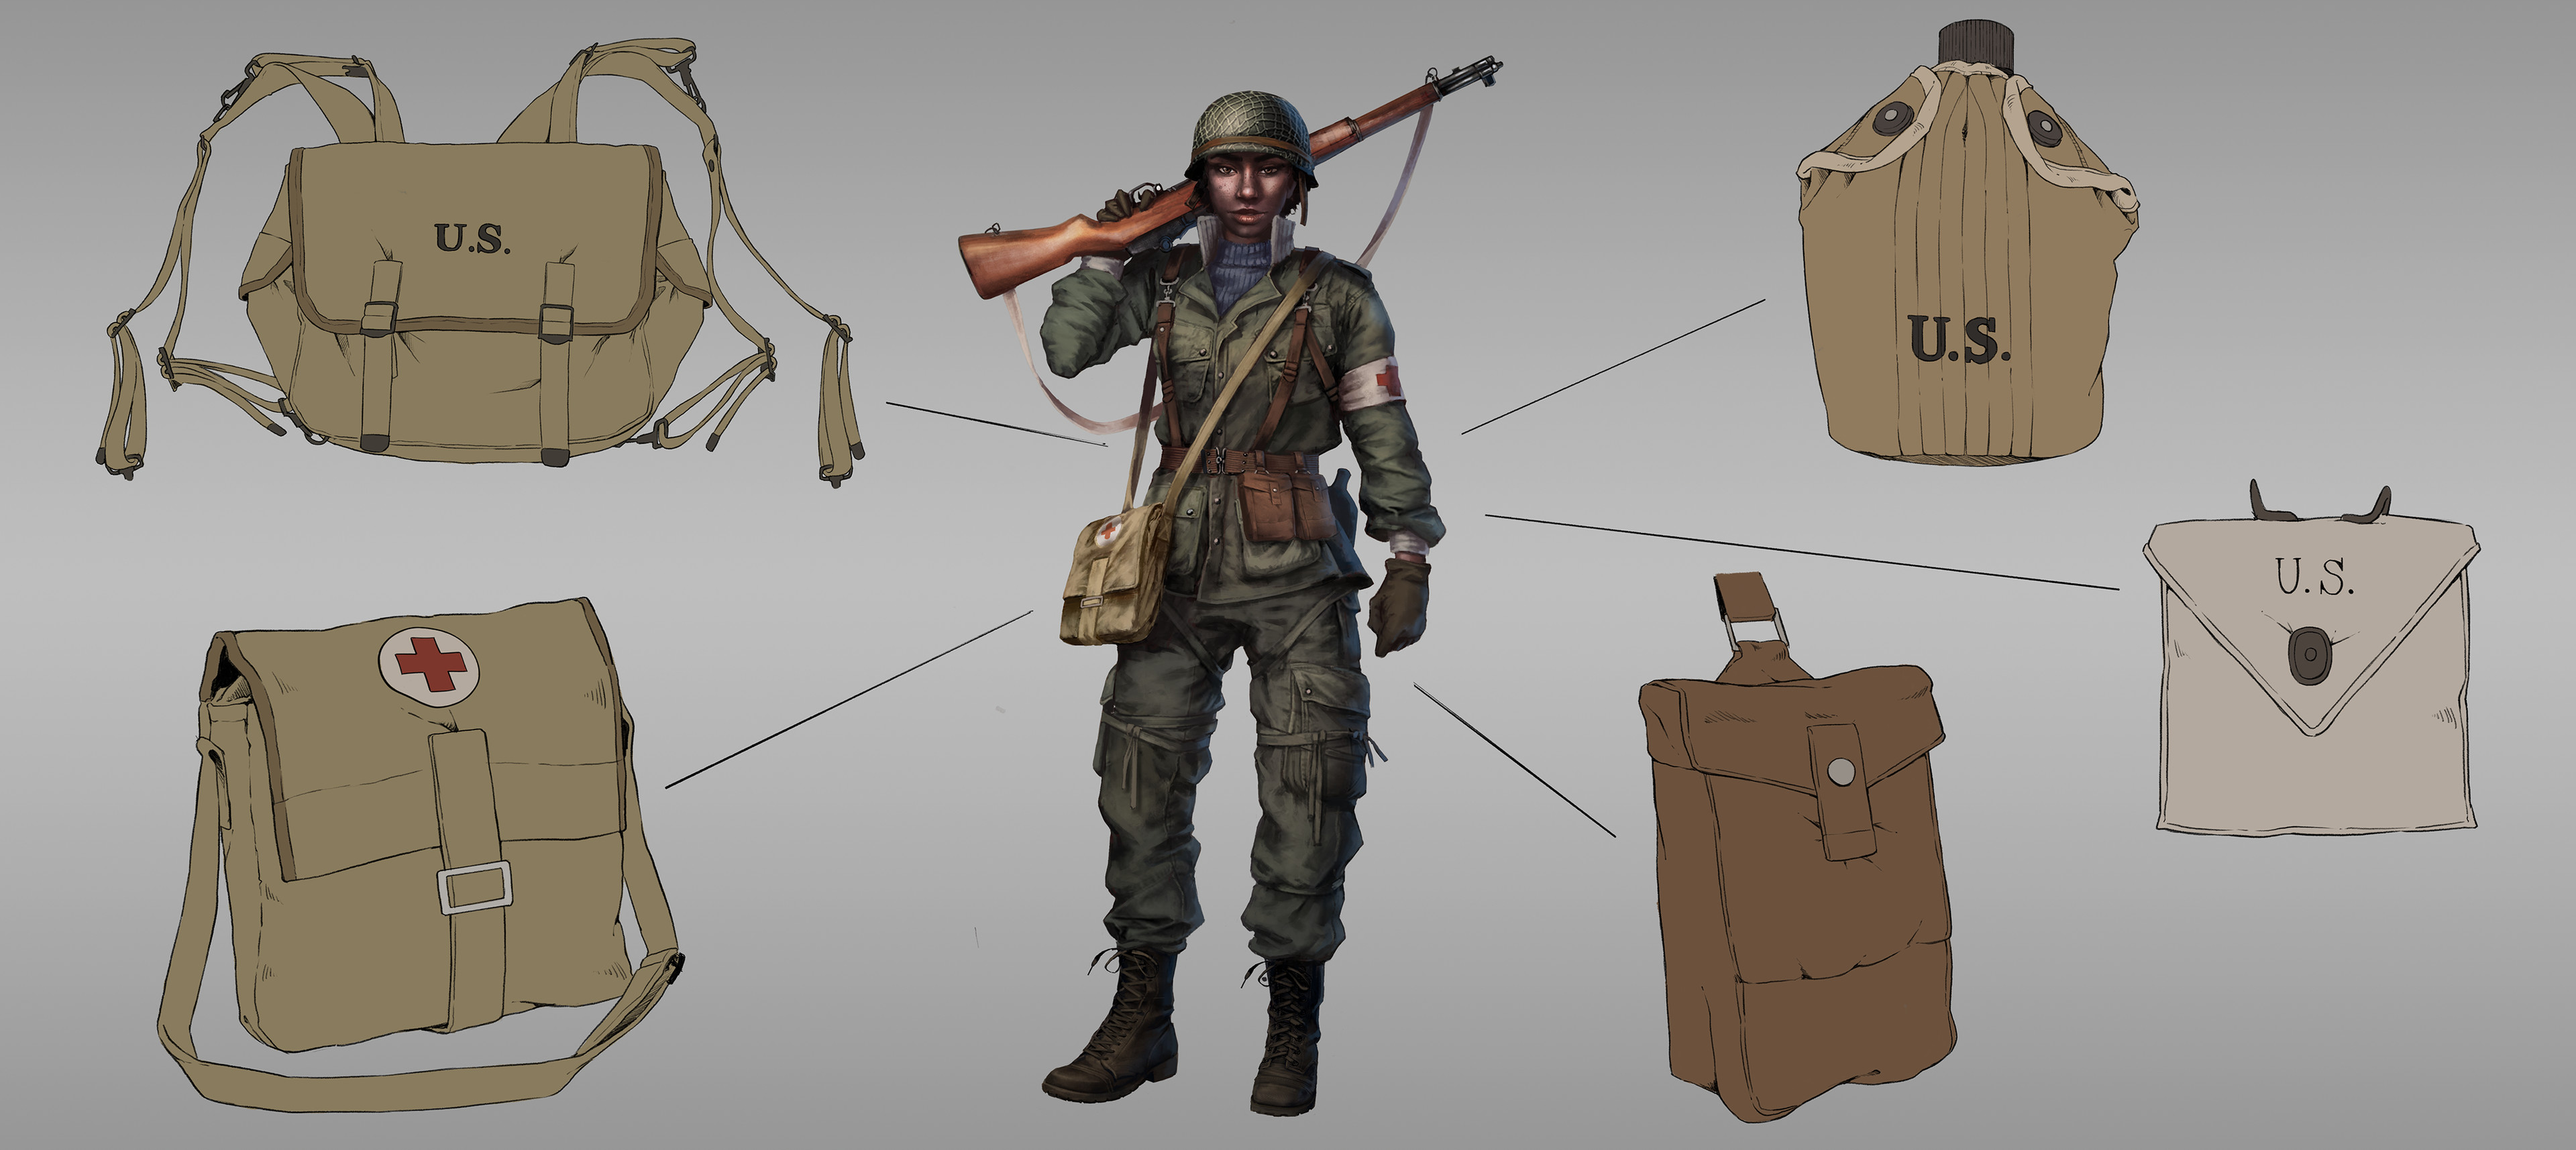 U.S.A details design breakdown. Being a medic I wanted to focus on giving her more utility equipment rather than offensive, since medics tend to fall under the support class.